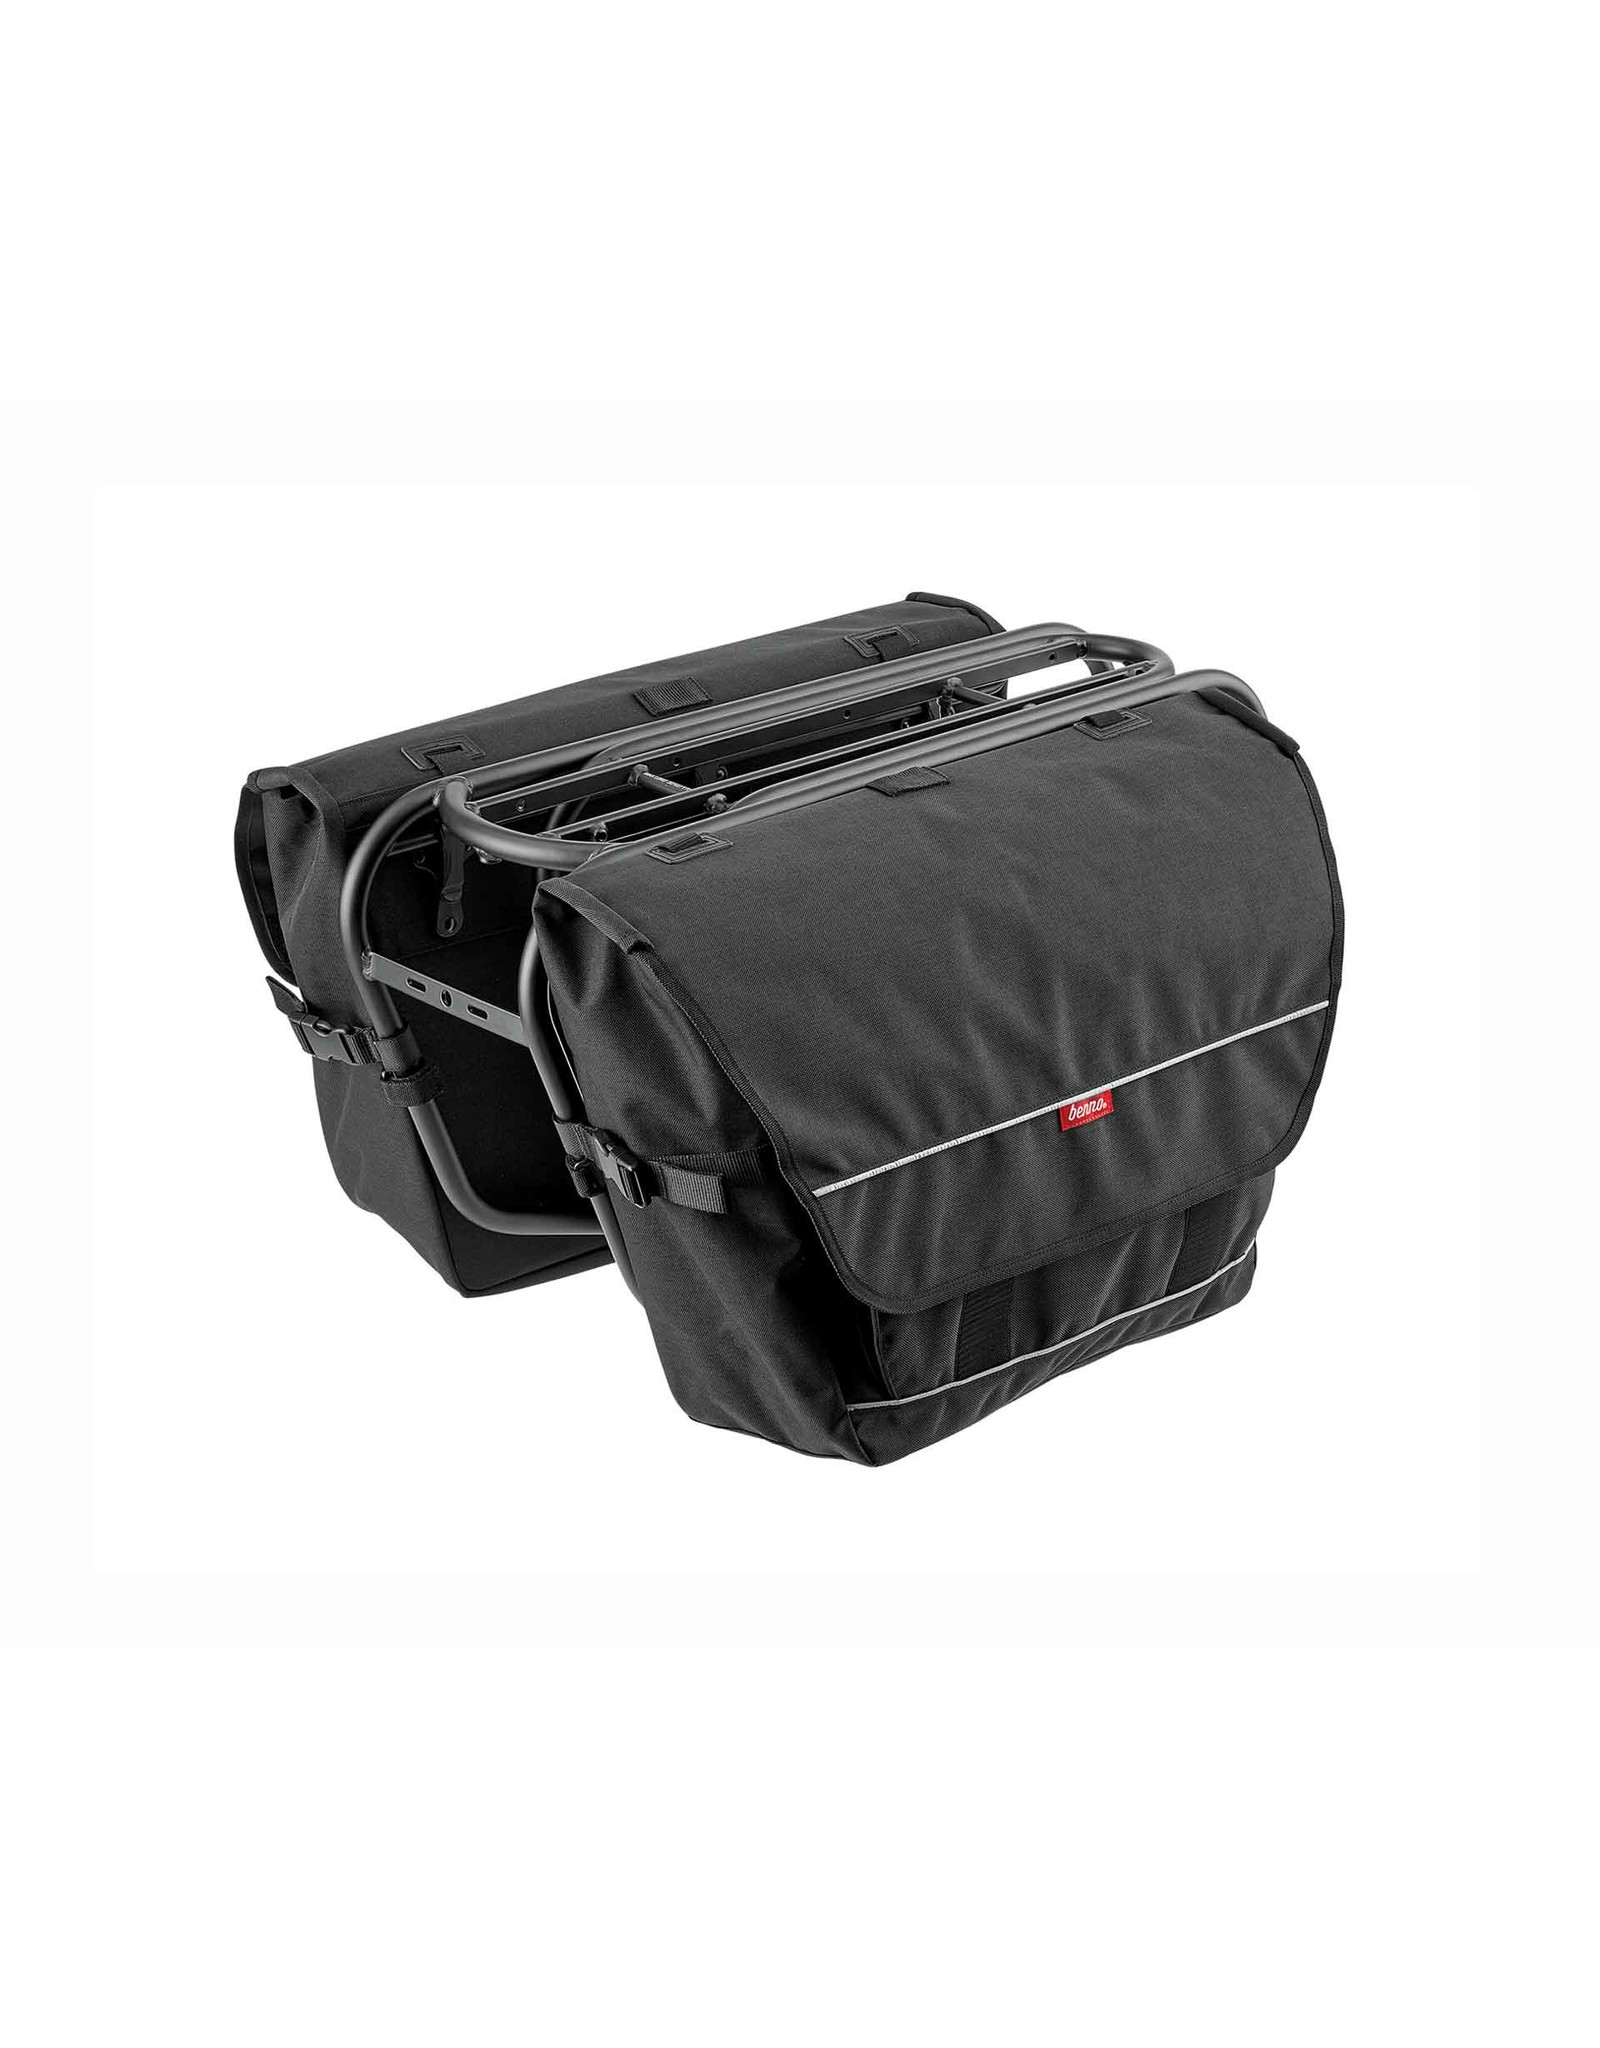 Benno BENNO PANNIERS CARRY ON/BOOST UTILITY PANNIER BAGS (SINGLE)